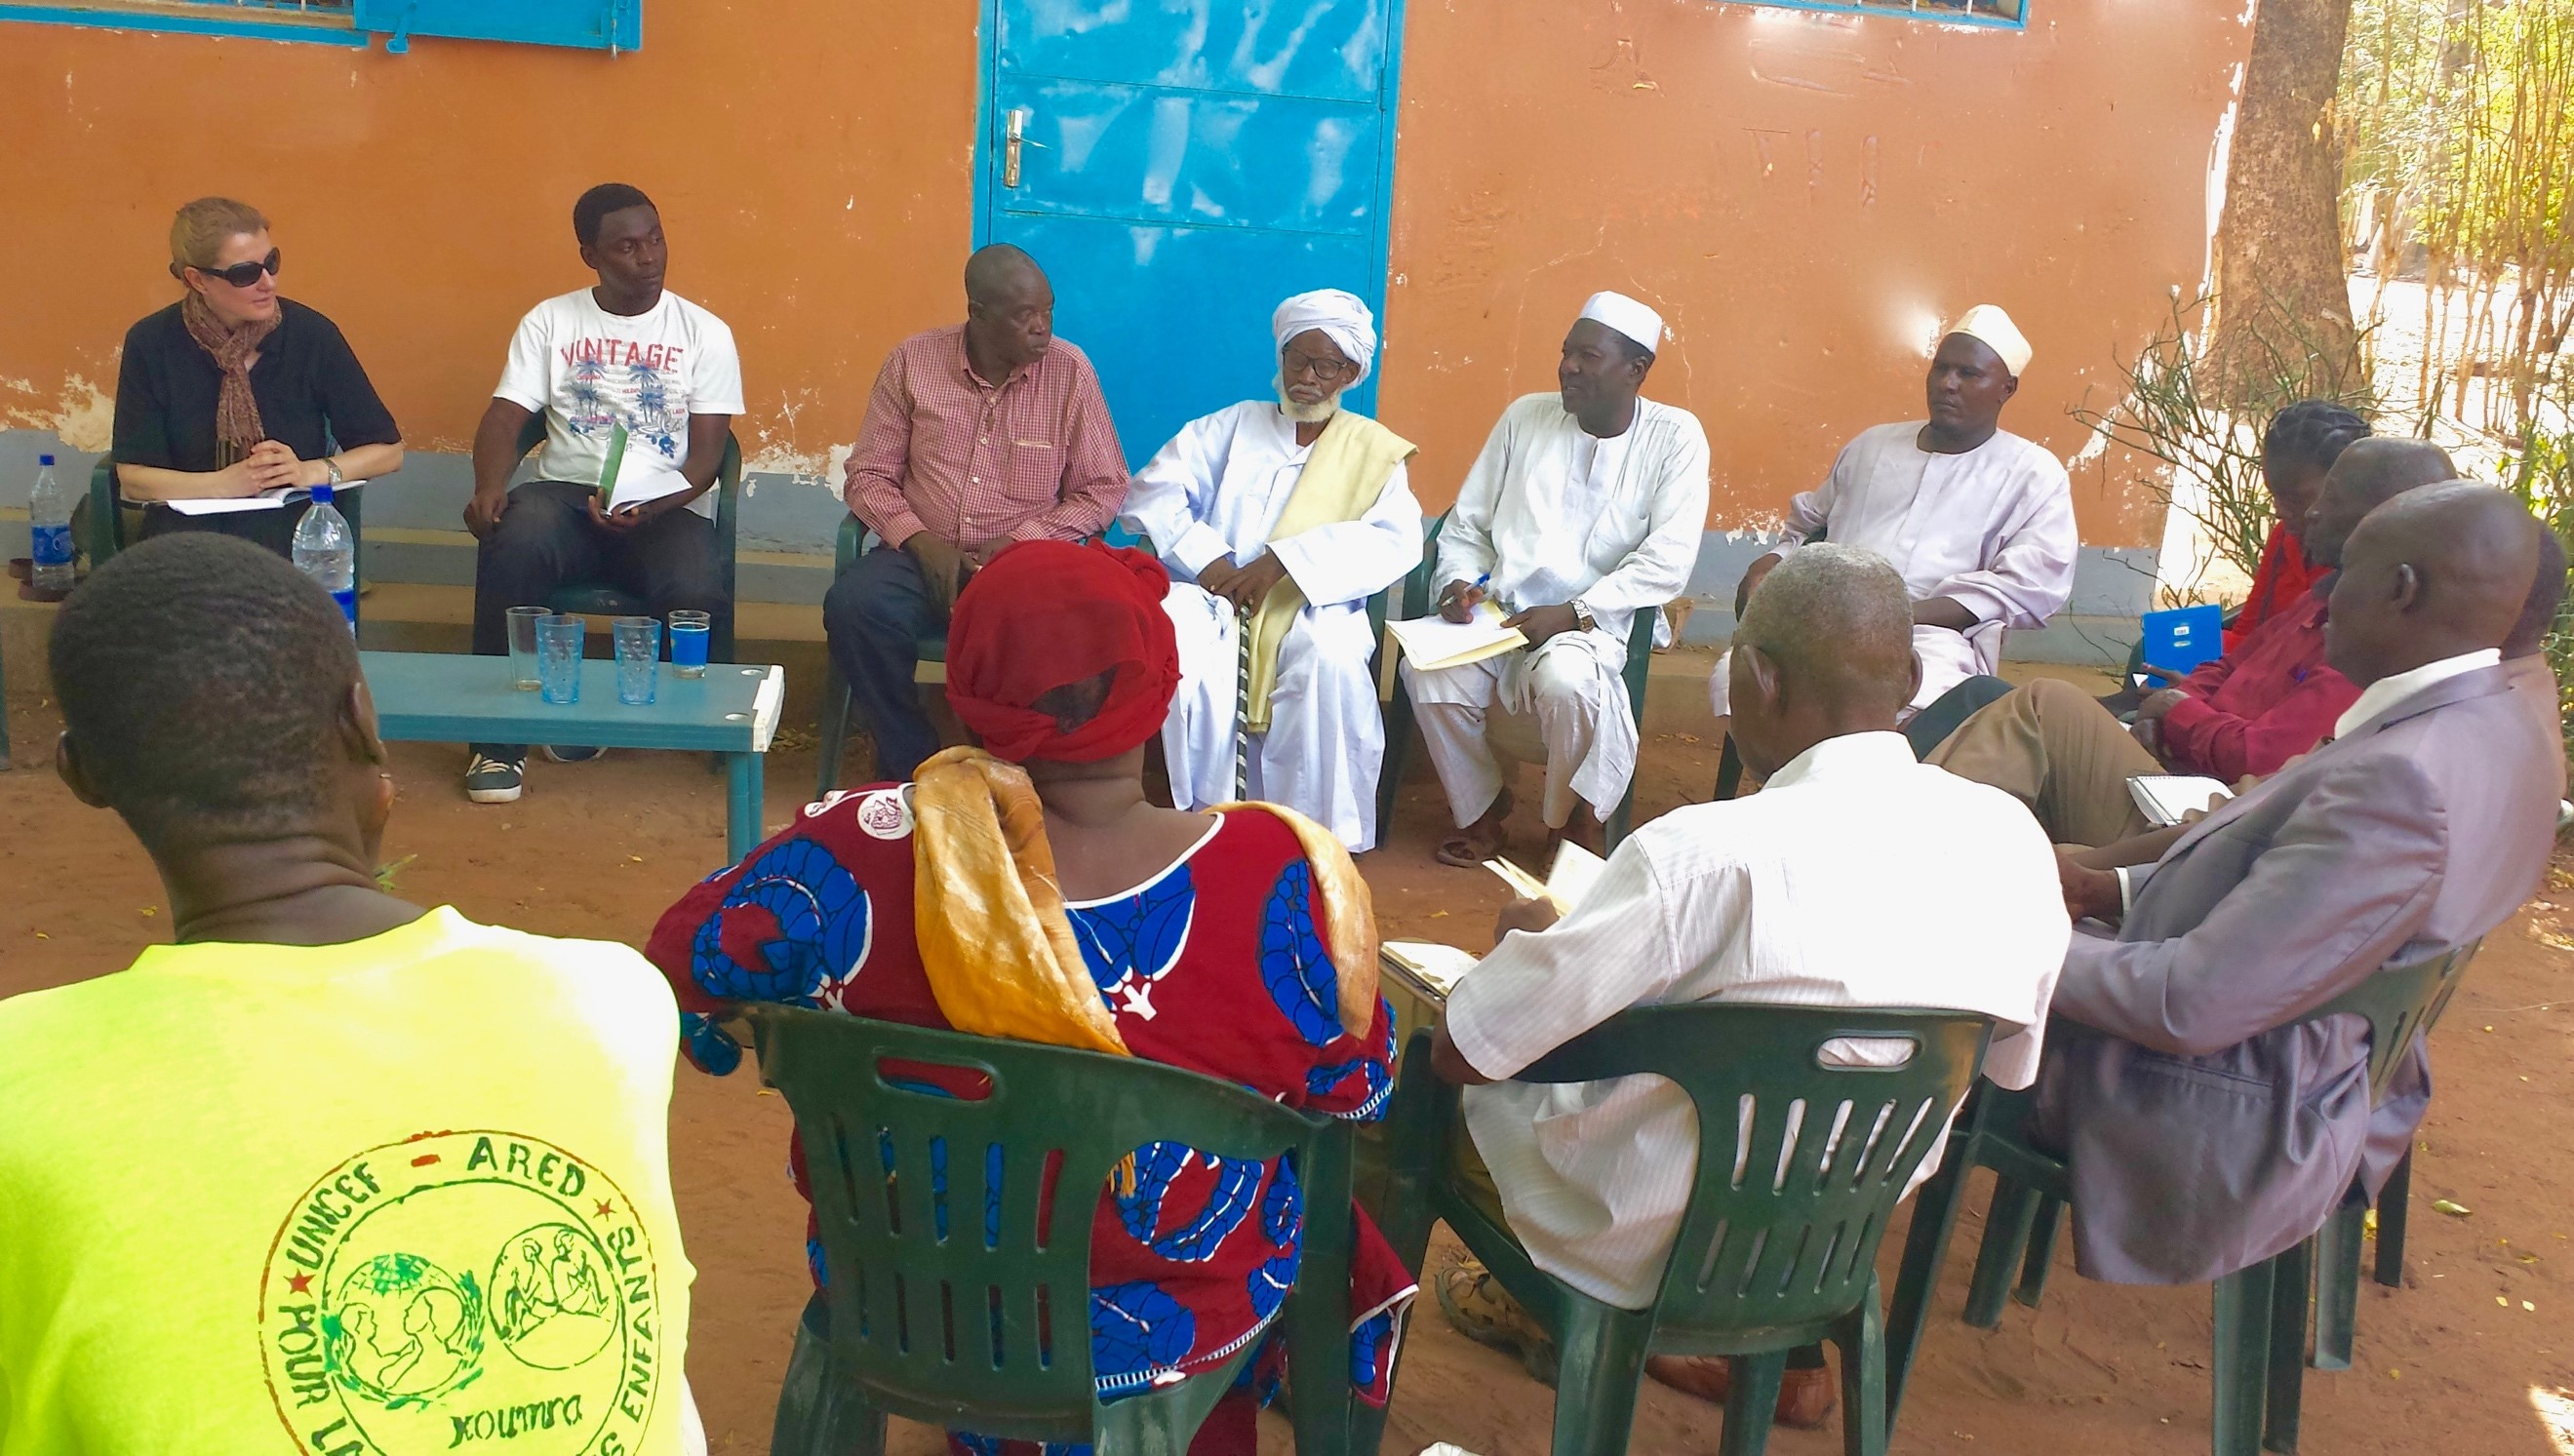 Focus Group Discussion with religious leaders in Koumra, Chad.